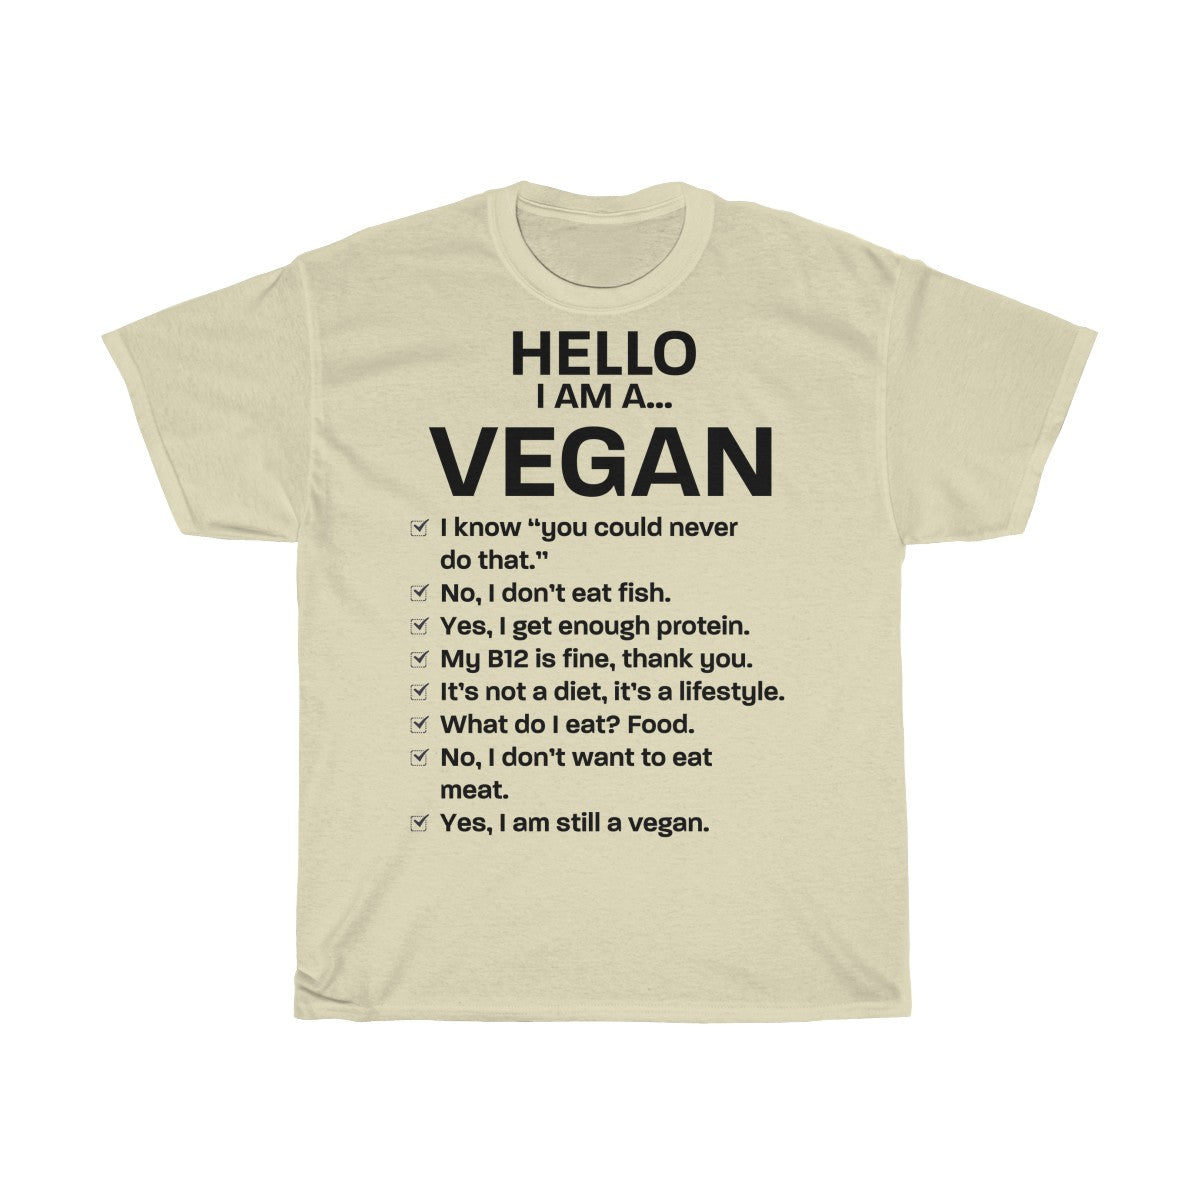 Hello, I am a Vegan - Unisex T-Shirt - My Vegan Menu